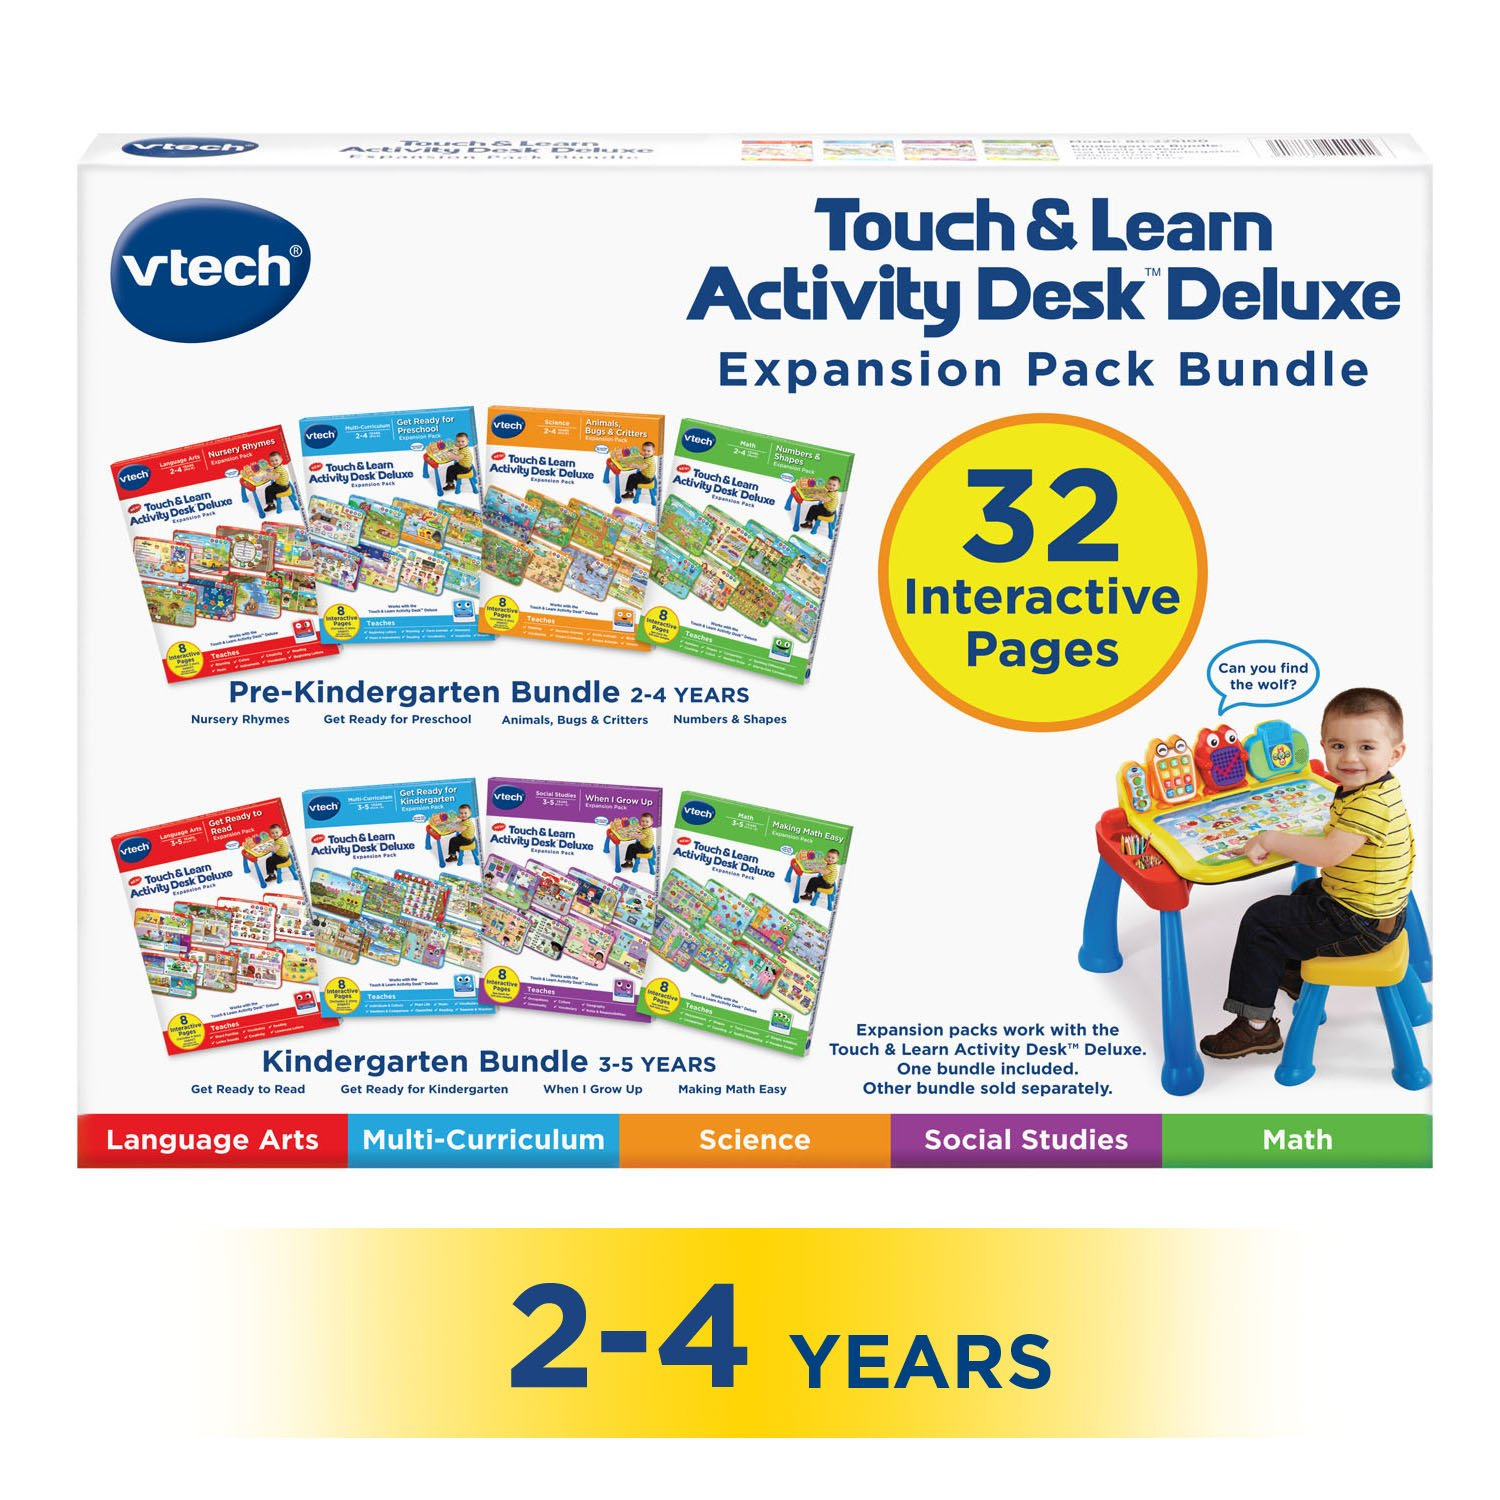 VTech Touch & Learn Activity Desk Deluxe 4-in-1 Preschool Bundle Expansion Pack I for Age 2-4 by VTech (Image #1)